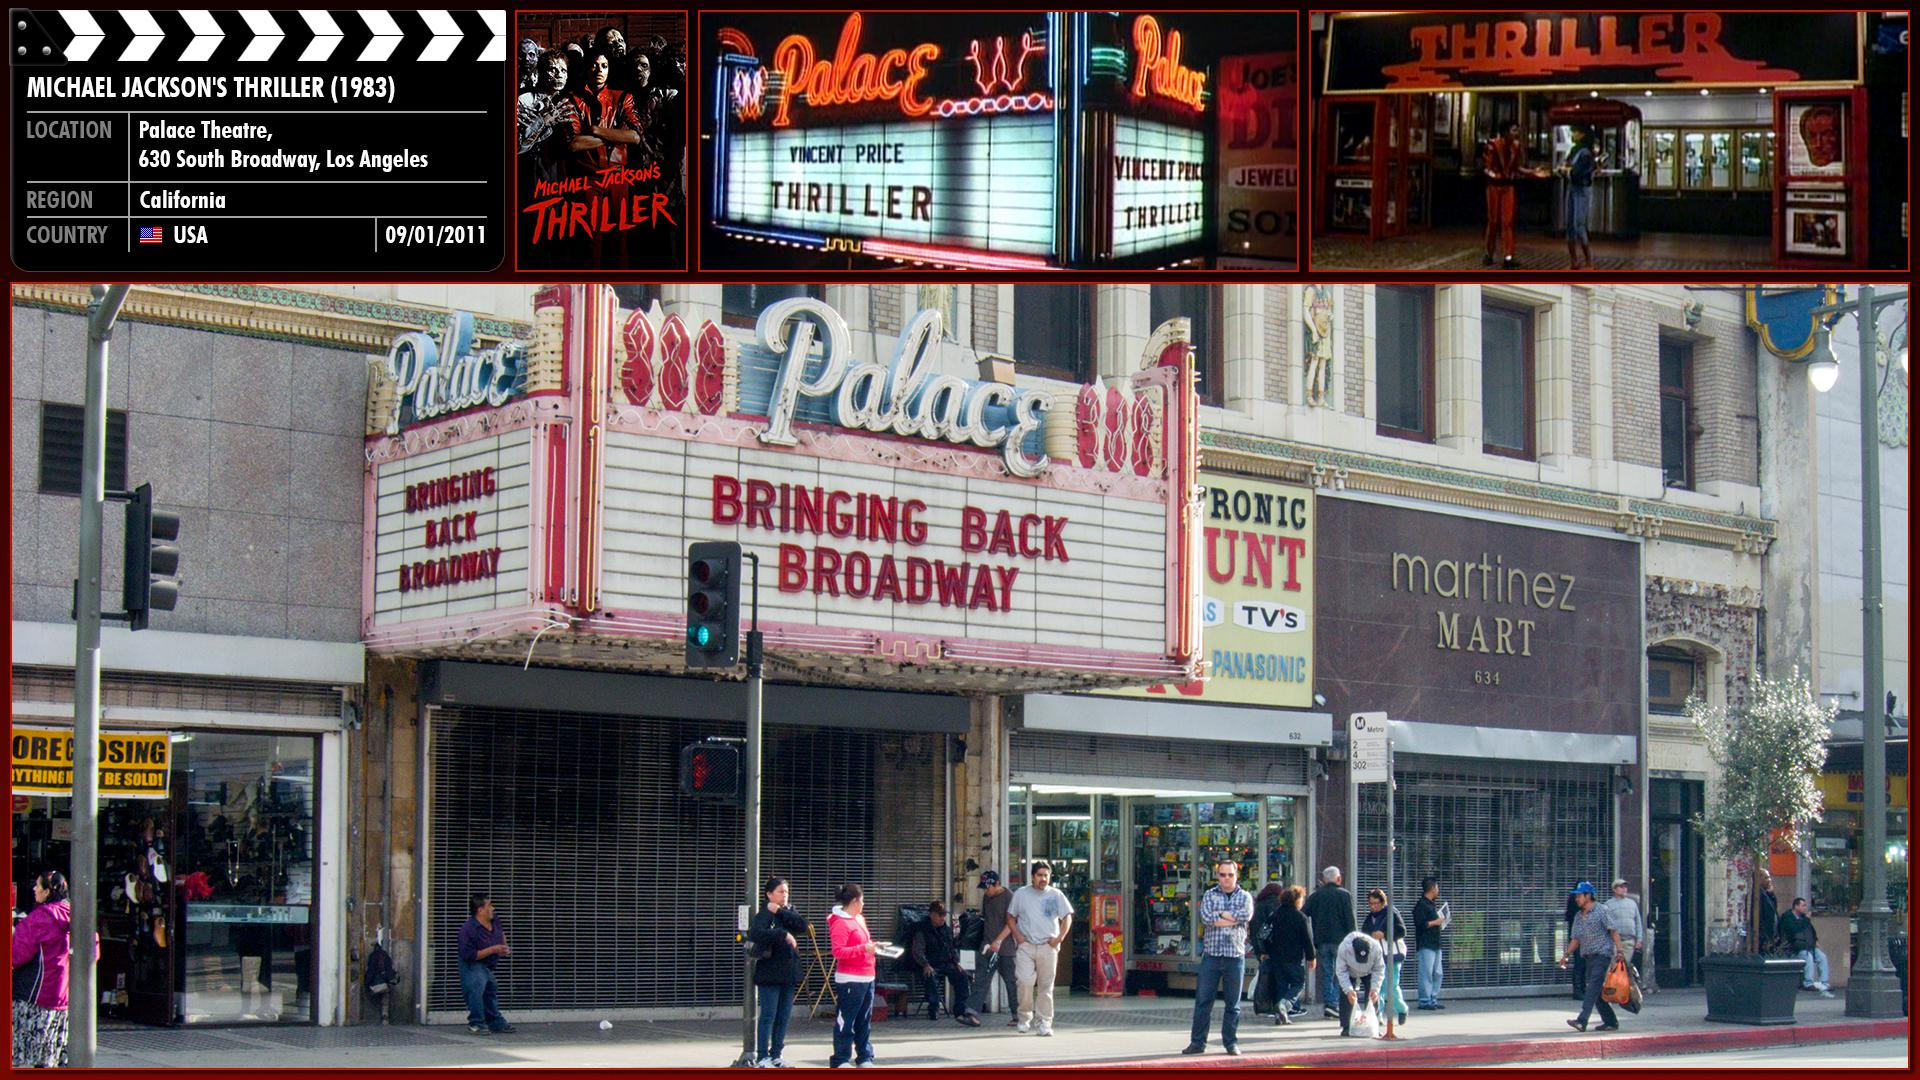 Filming location photo for Michael Jackson's Thriller (1983) 2 of 3